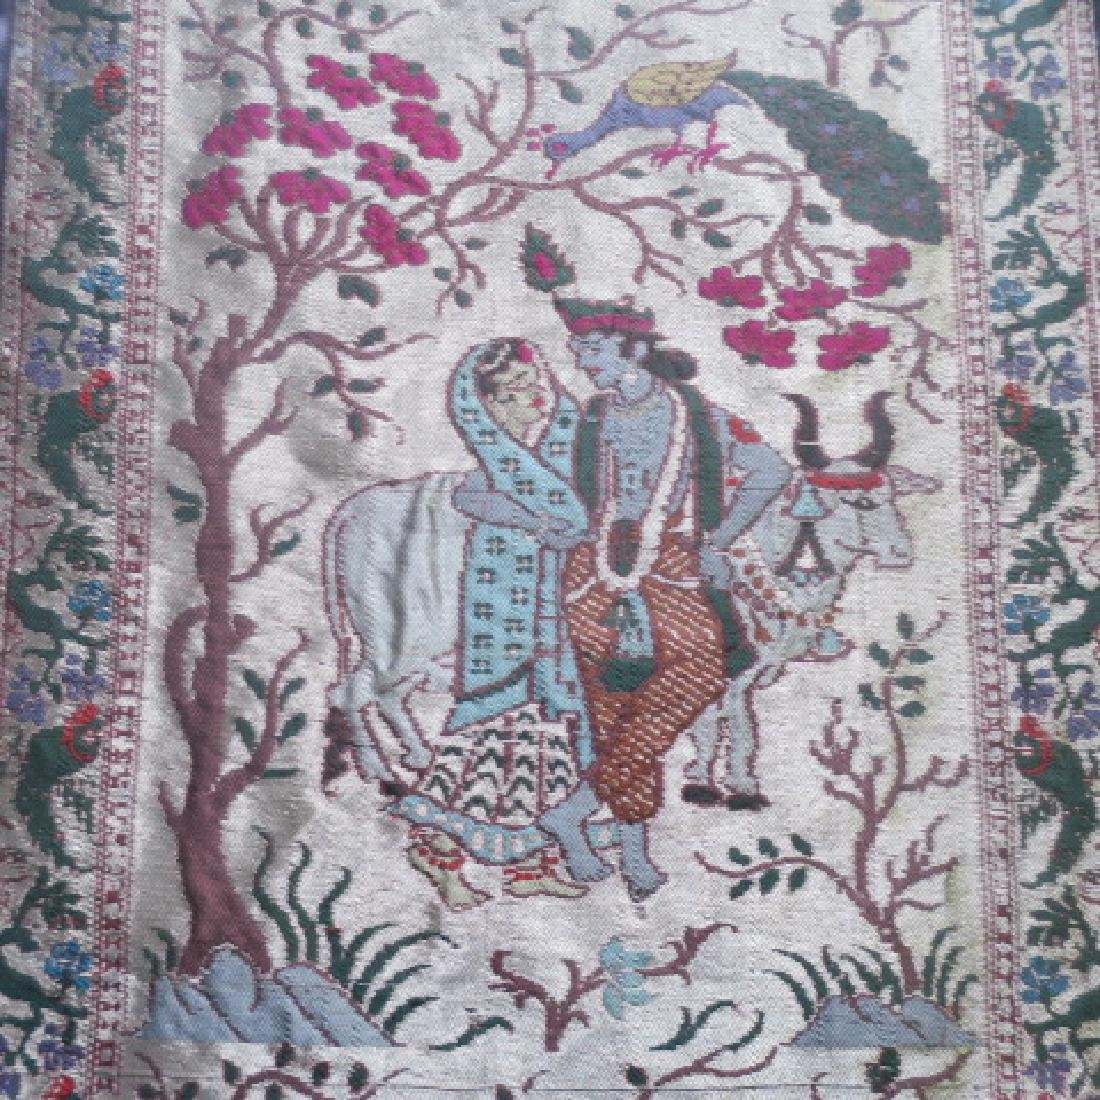 Pictorial Middle Eastern Framed Tapestry: - 2